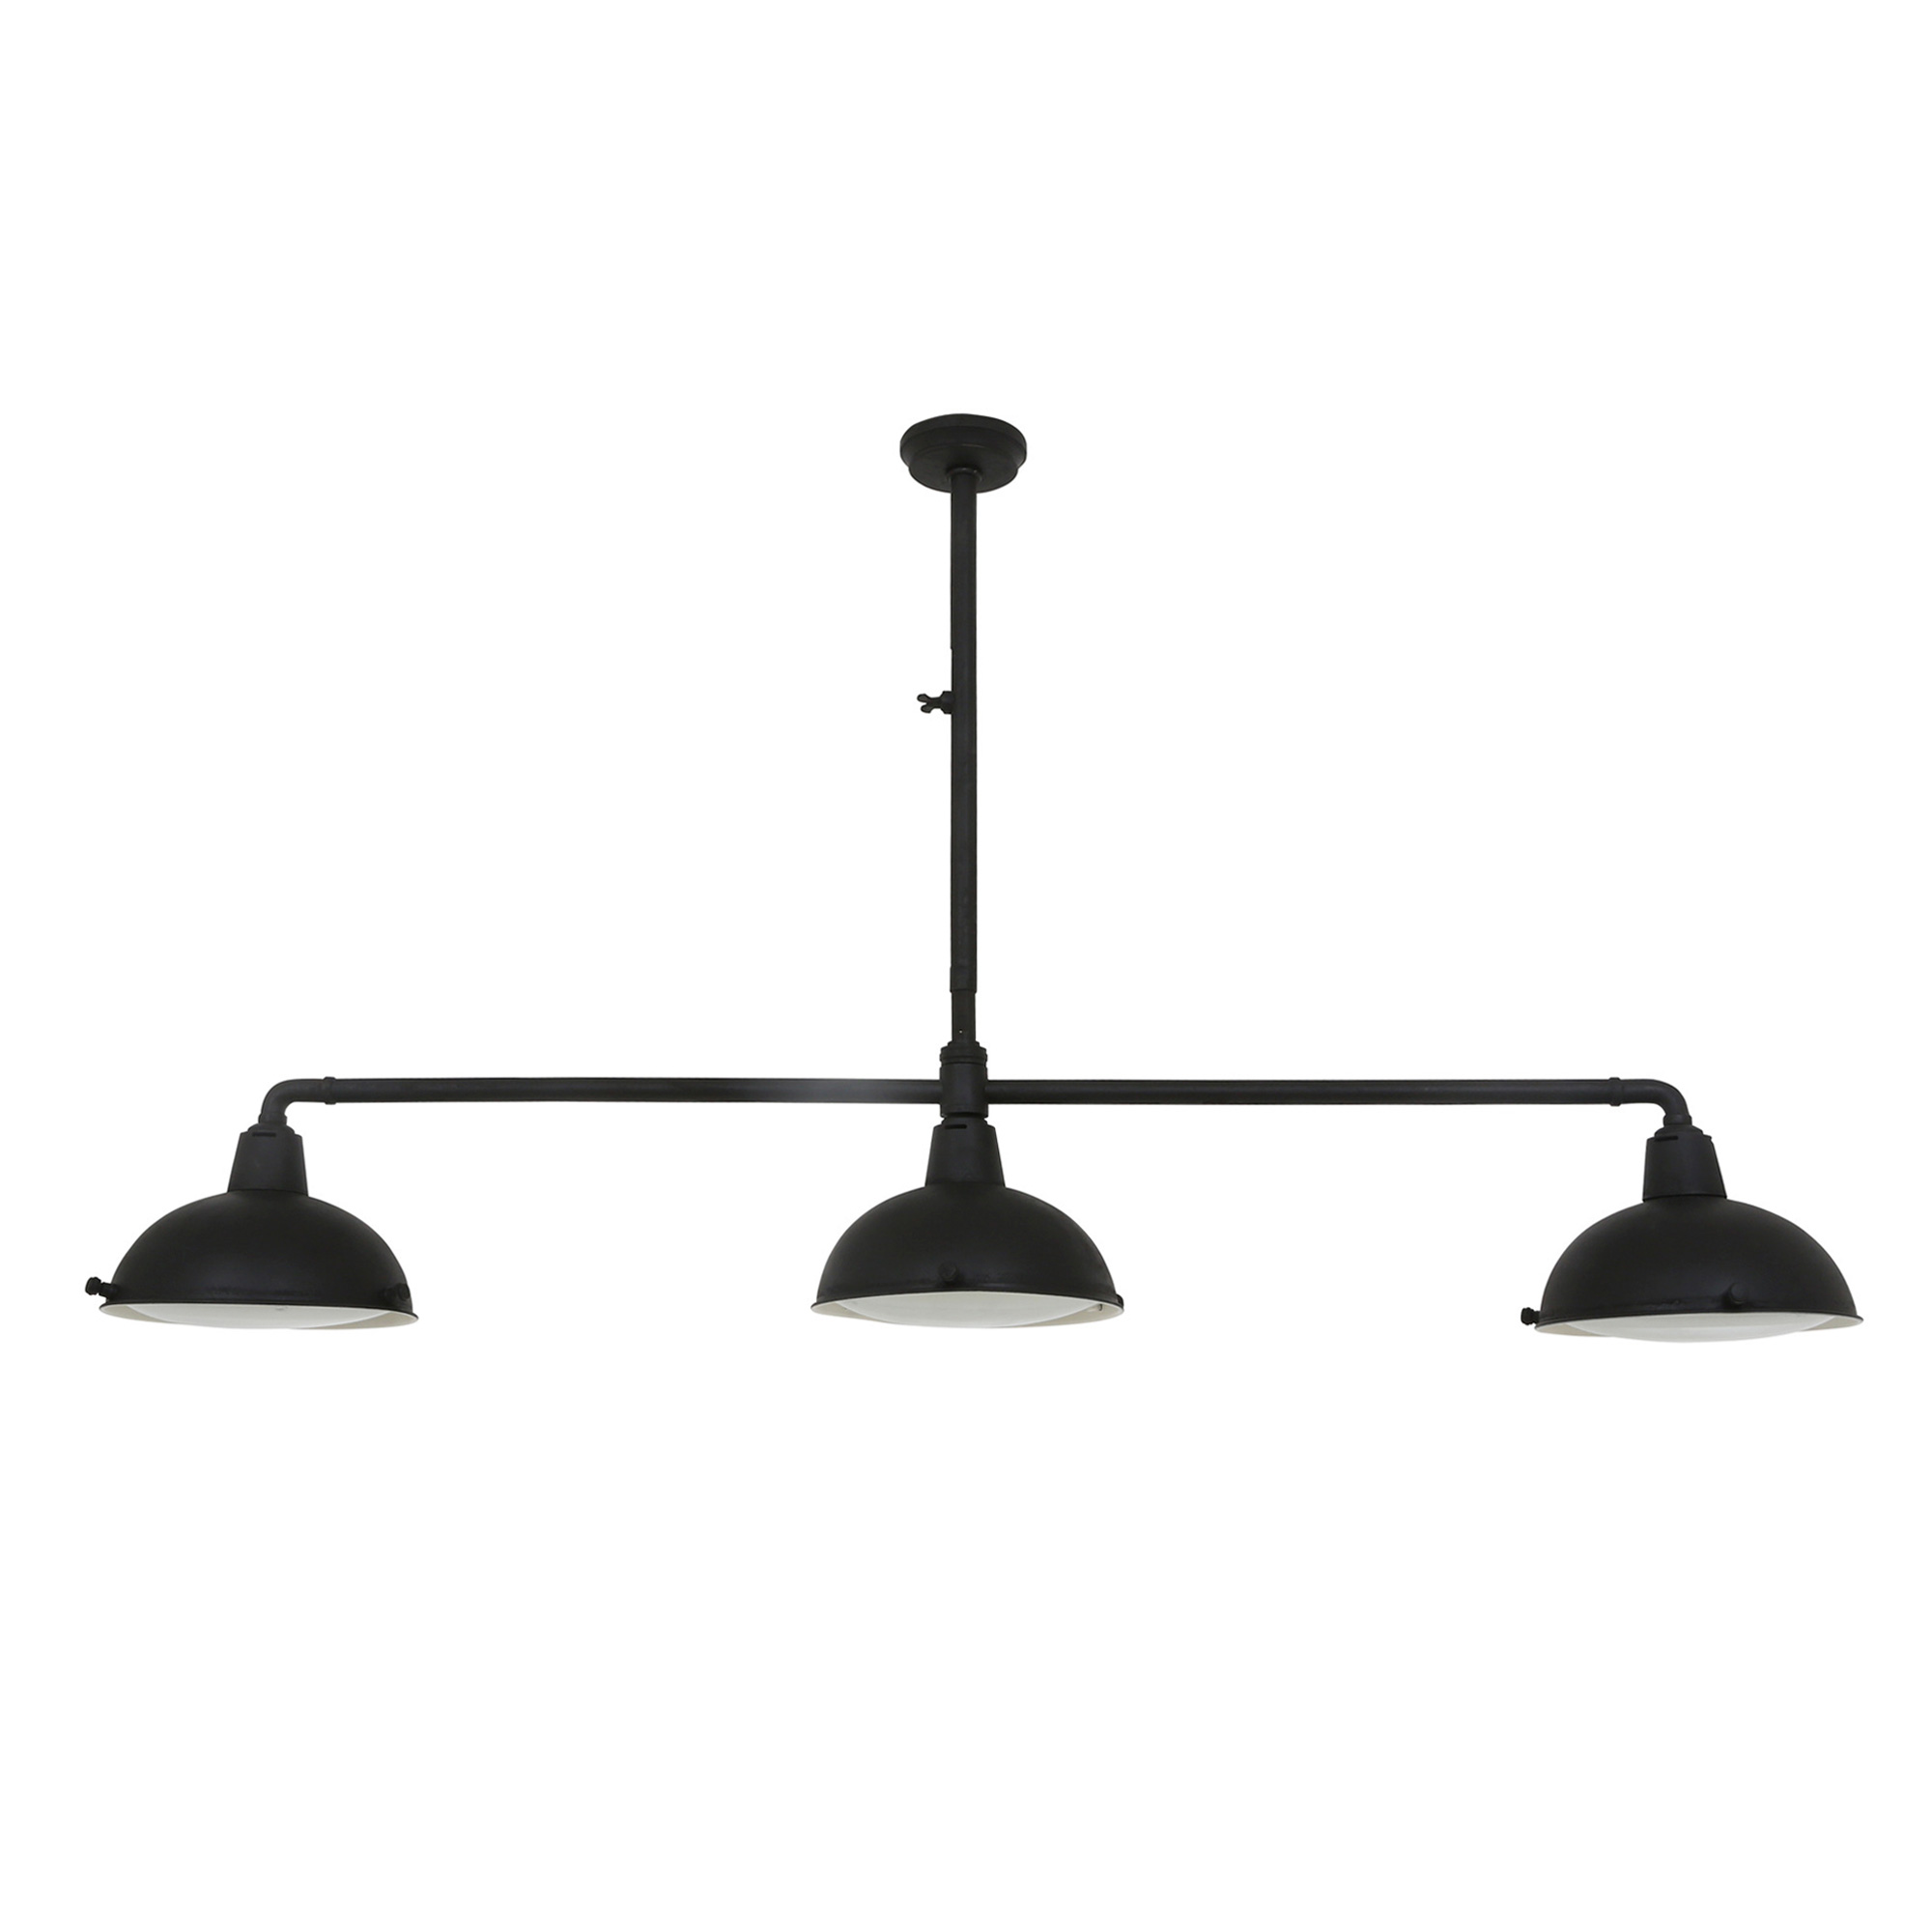 Hanglamp Billiards 3 black